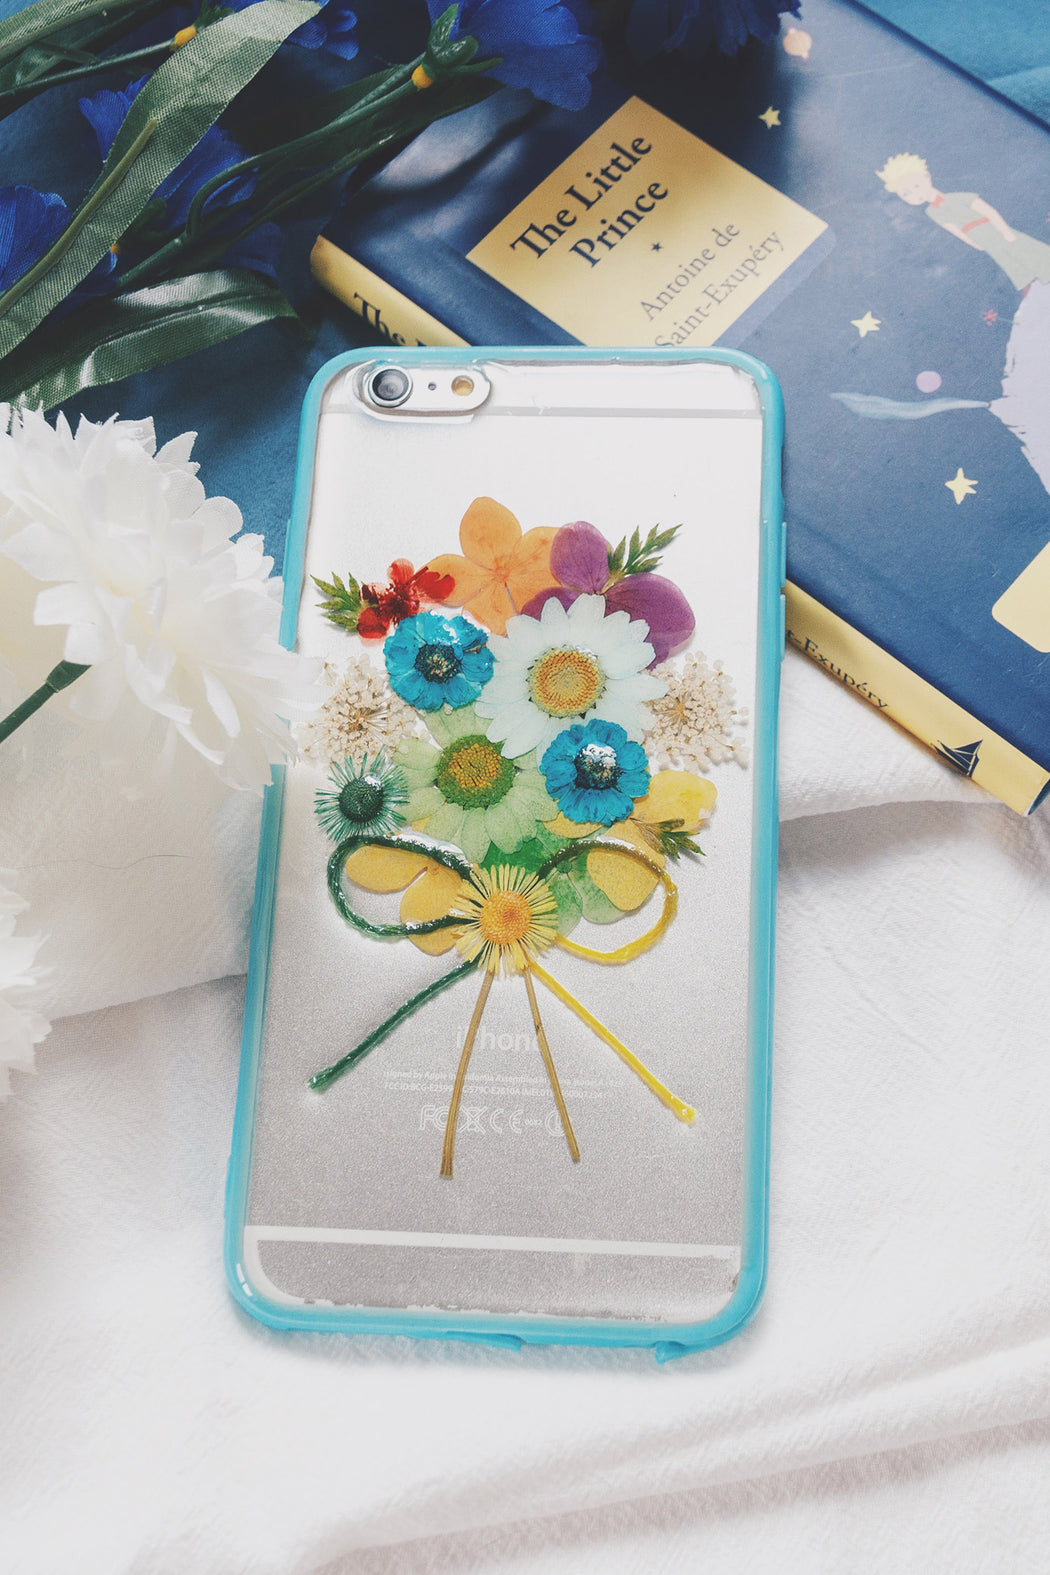 Pressed_Flower_Cute_Protective_iPhone_6Plus_6s_plus_Floral_Bumper_Case_Blue_Bouquet_Floral_Neverland_Floralfy